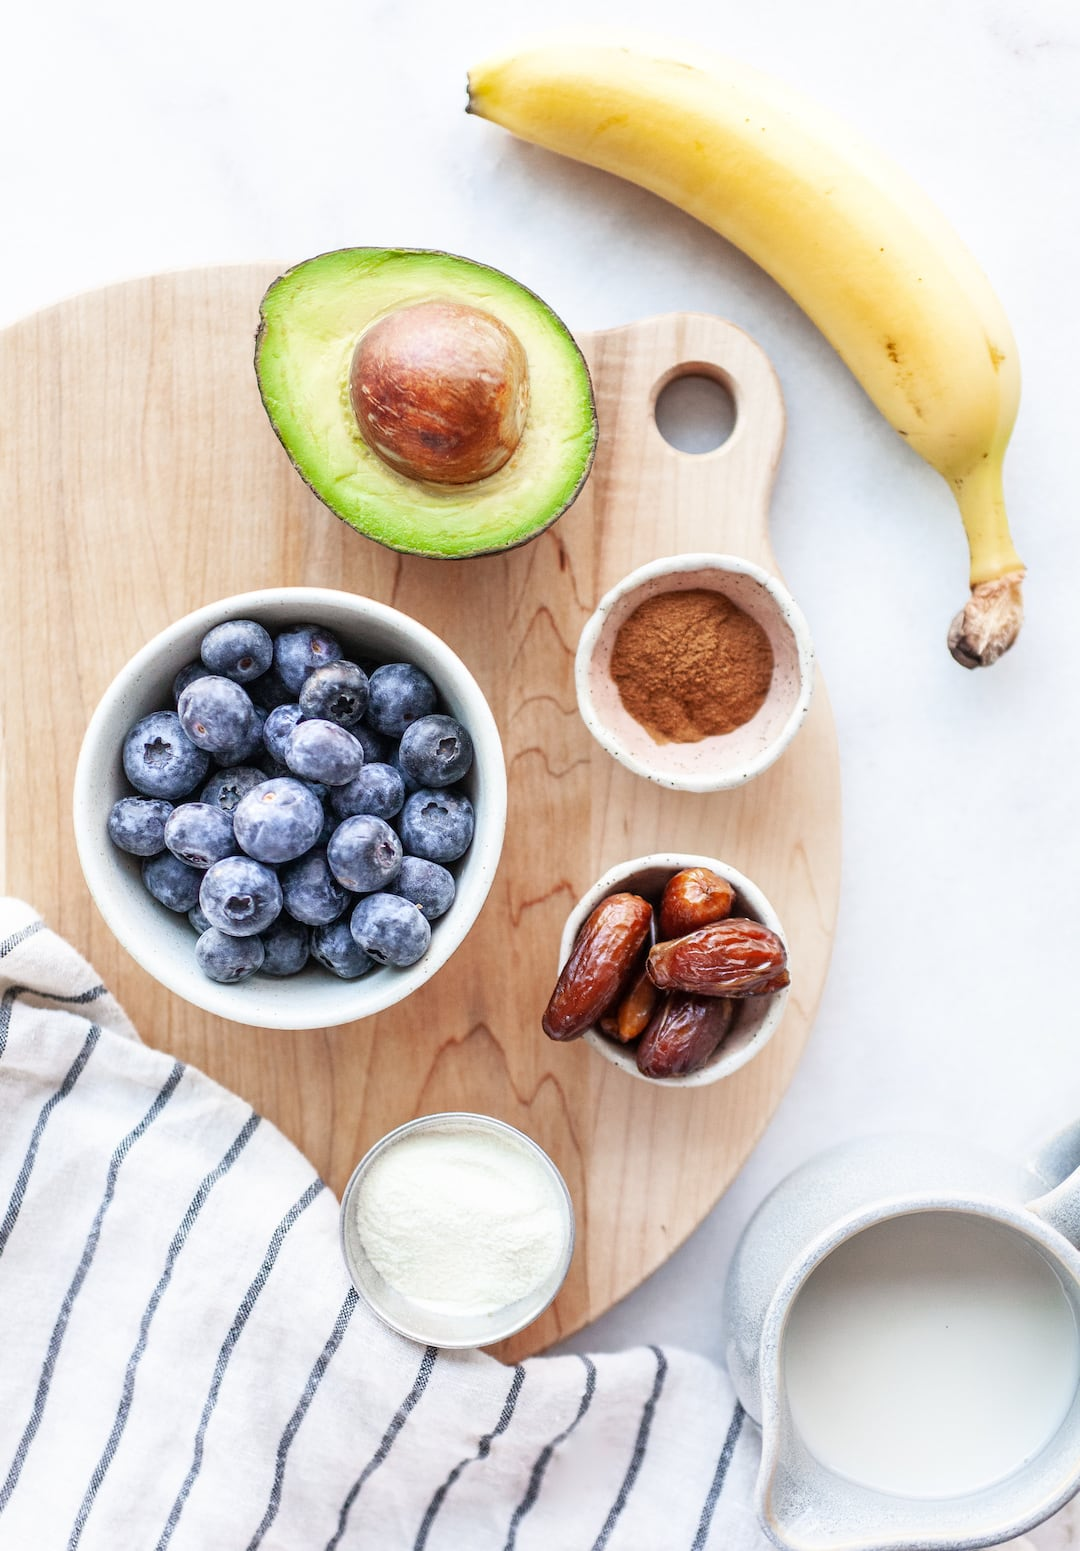 Flatlay of Creamy Blueberry Avocado Smoothie ingredients - blueberries, dates, avocado, cinnamon, banana, protein powder on a wood platter